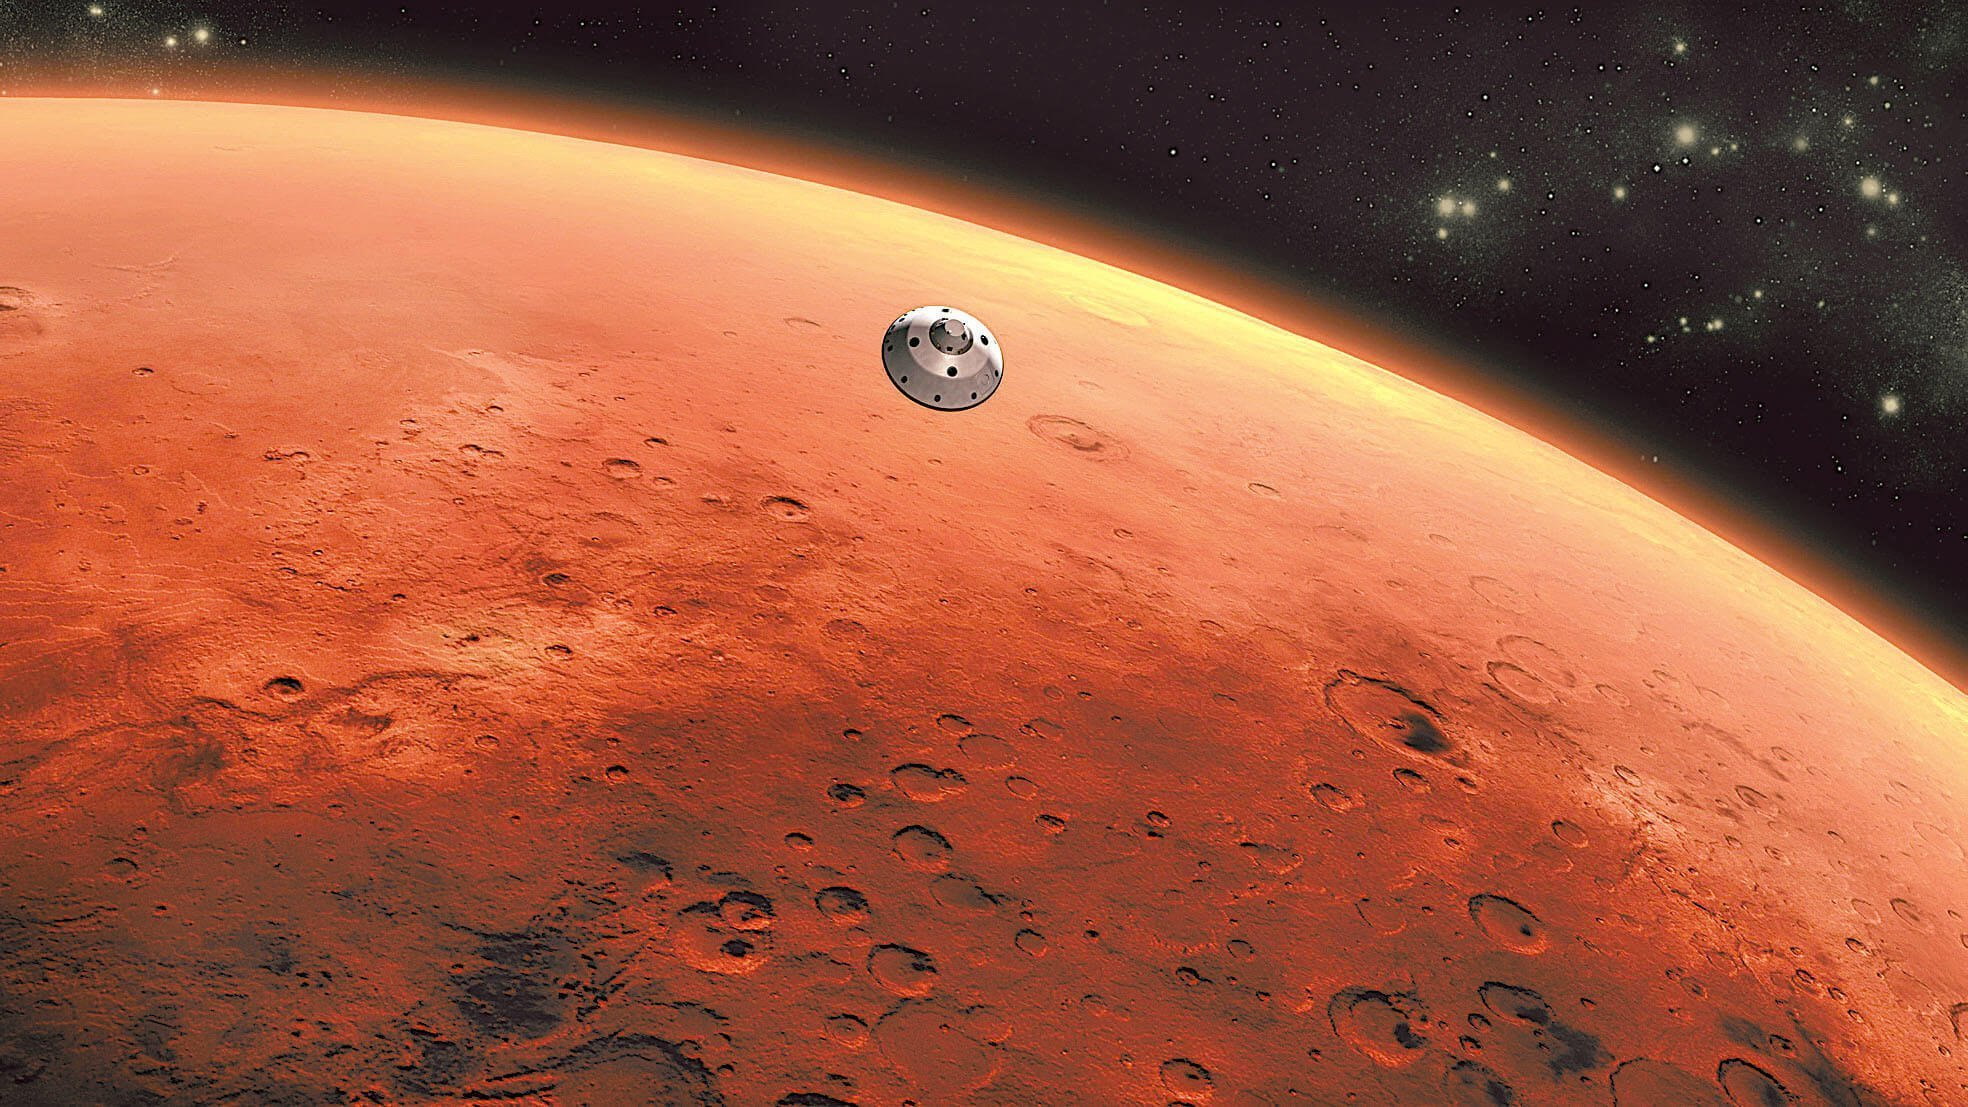 An artist's concept of NASA's Mars Science Laboratory spacecraft approaching Mars. The Curiosity rover is safely tucked inside the spacecraft's aeroshell. The mission's approach phase begins 45 minutes before the spacecraft enters the Martian atmosphere. It lasts until the spacecraft enters the atmosphere. For navigation purposes, the atmospheric entry point is 2,188 miles (3,522 kilometers) above the center of the planet. This illustration depicts a scene after the spacecraft's cruise stage has been jettisoned, which will occur 10 minutes before atmospheric entry.The landing is set for late evening August 5, 2012. REUTERS/ NASA/JPL-Caltech/Handout (UNITED STATES - Tags: SCIENCE TECHNOLOGY) FOR EDITORIAL USE ONLY. NOT FOR SALE FOR MARKETING OR ADVERTISING CAMPAIGNS. THIS IMAGE HAS BEEN SUPPLIED BY A THIRD PARTY. IT IS DISTRIBUTED, EXACTLY AS RECEIVED BY REUTERS, AS A SERVICE TO CLIENTS